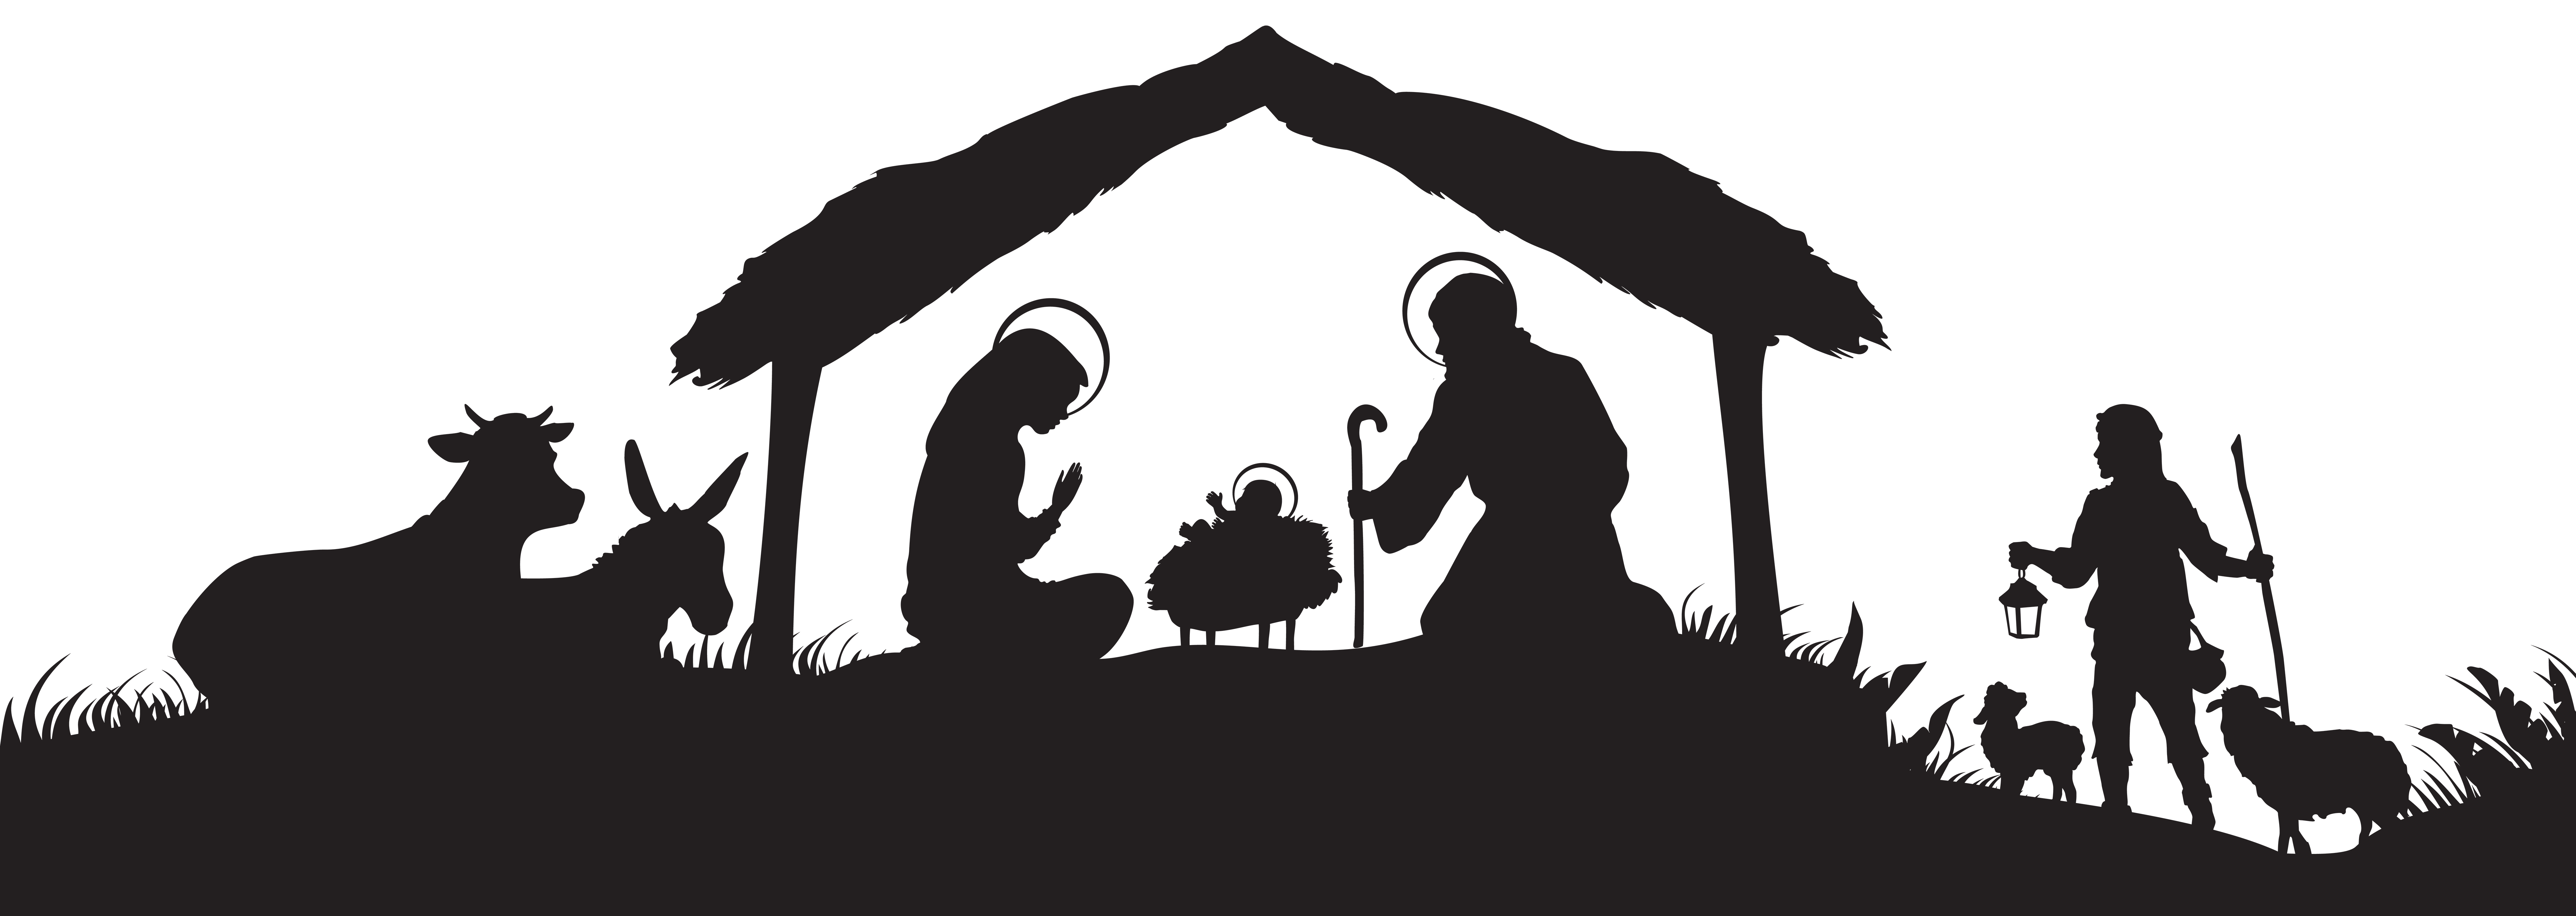 Christmas Nativity Scene Silhouette PNG Clip Art Image.